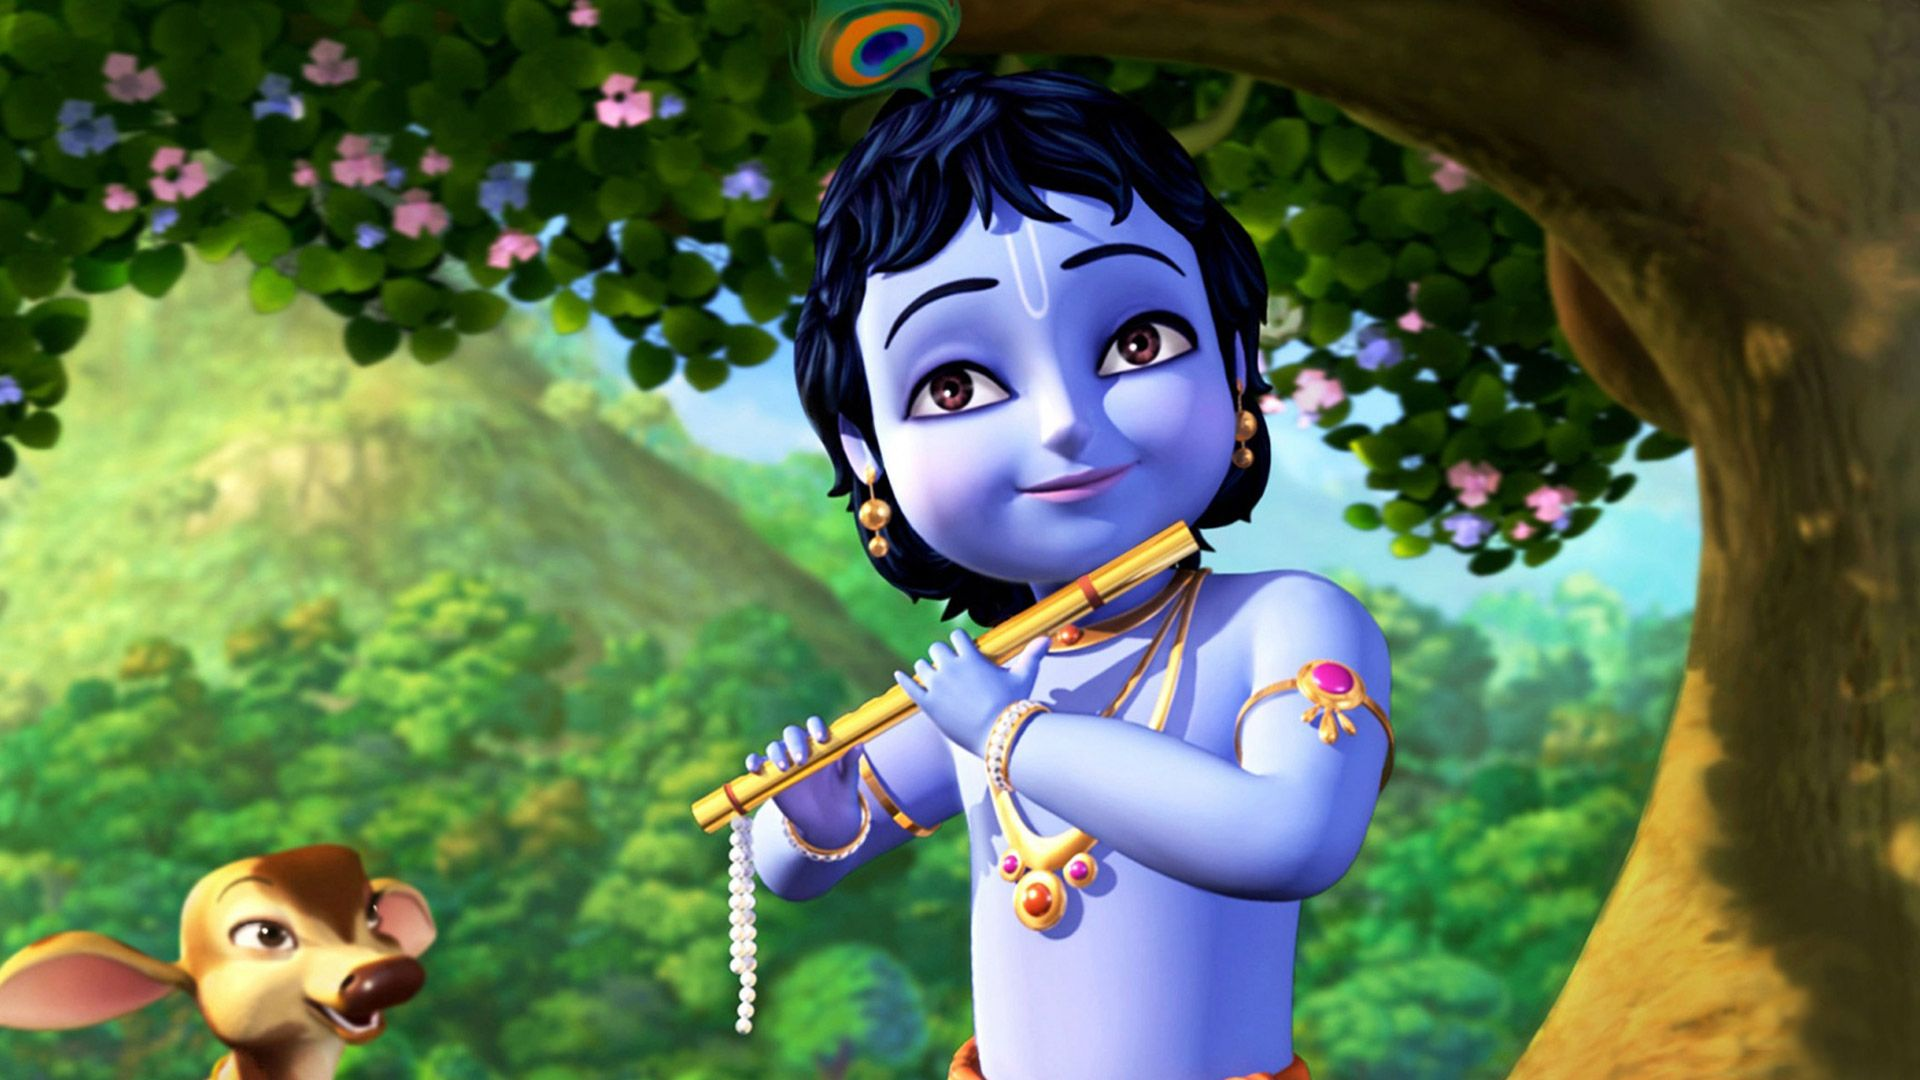 let us gather together and celebrate the birth of lord krishna let us sing dance pray and rejoice his presence this day happy janmashtami to yo